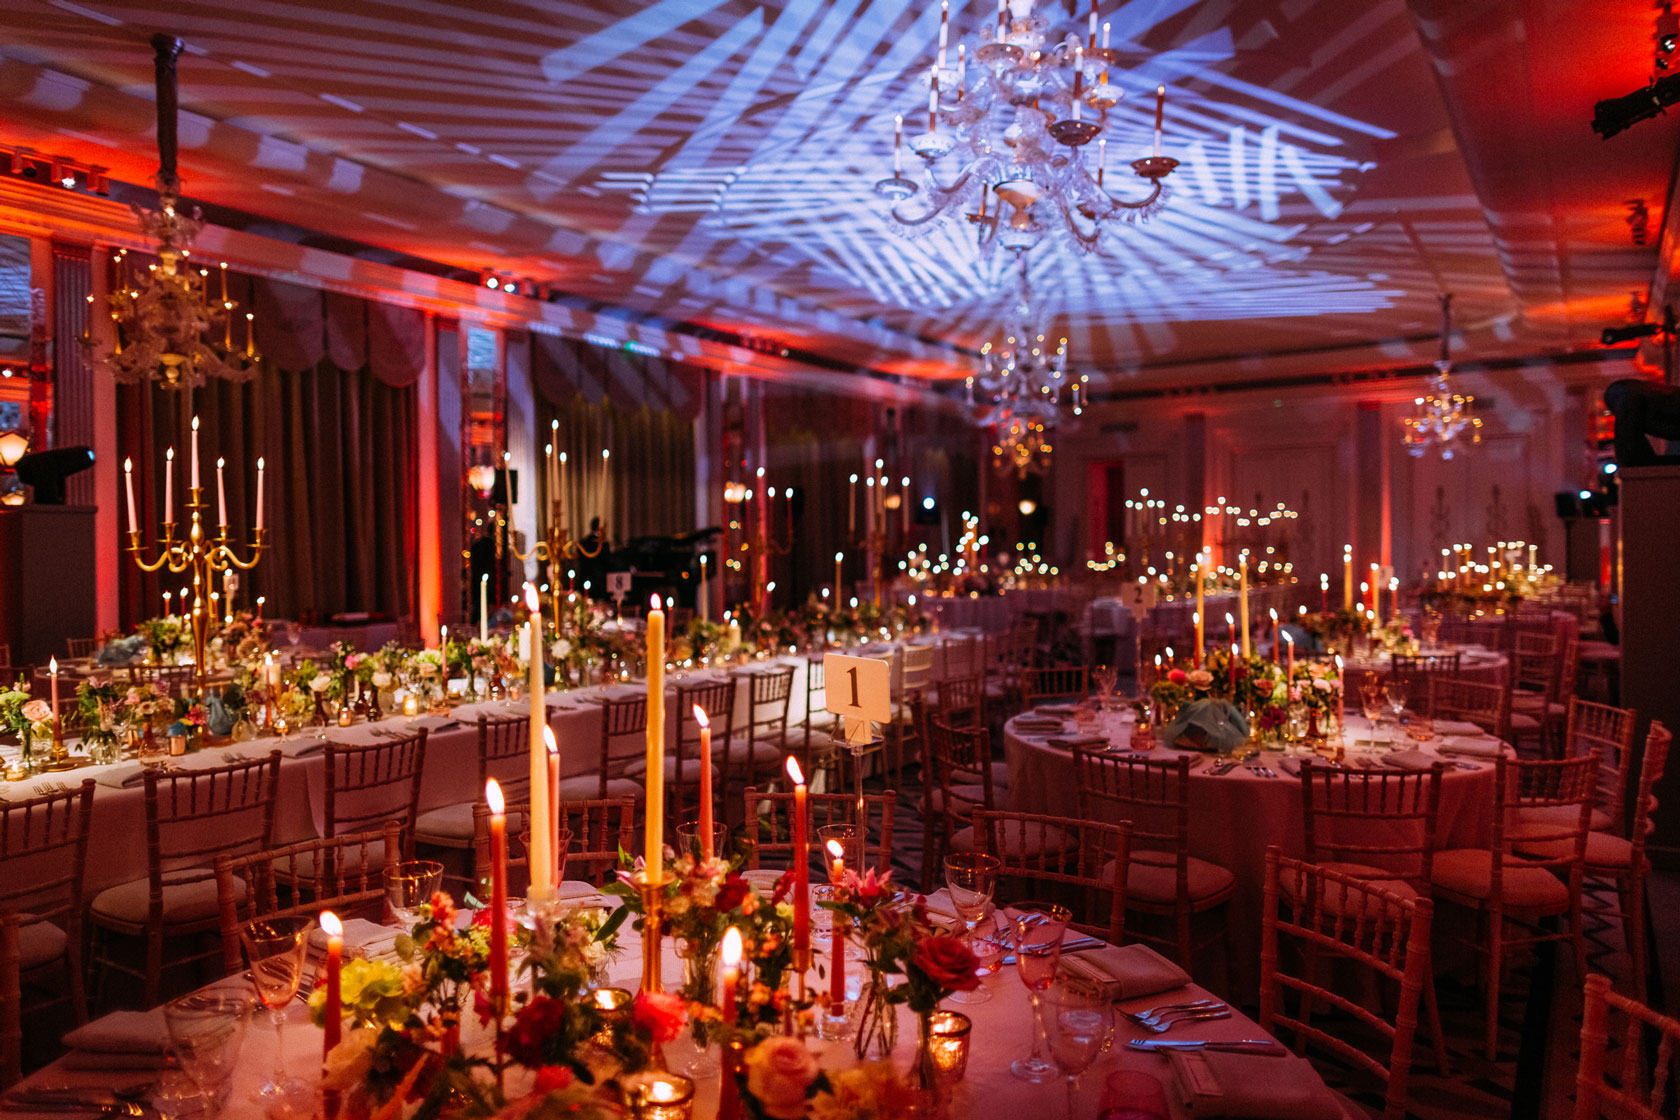 A candlelit wedding at Claridge's